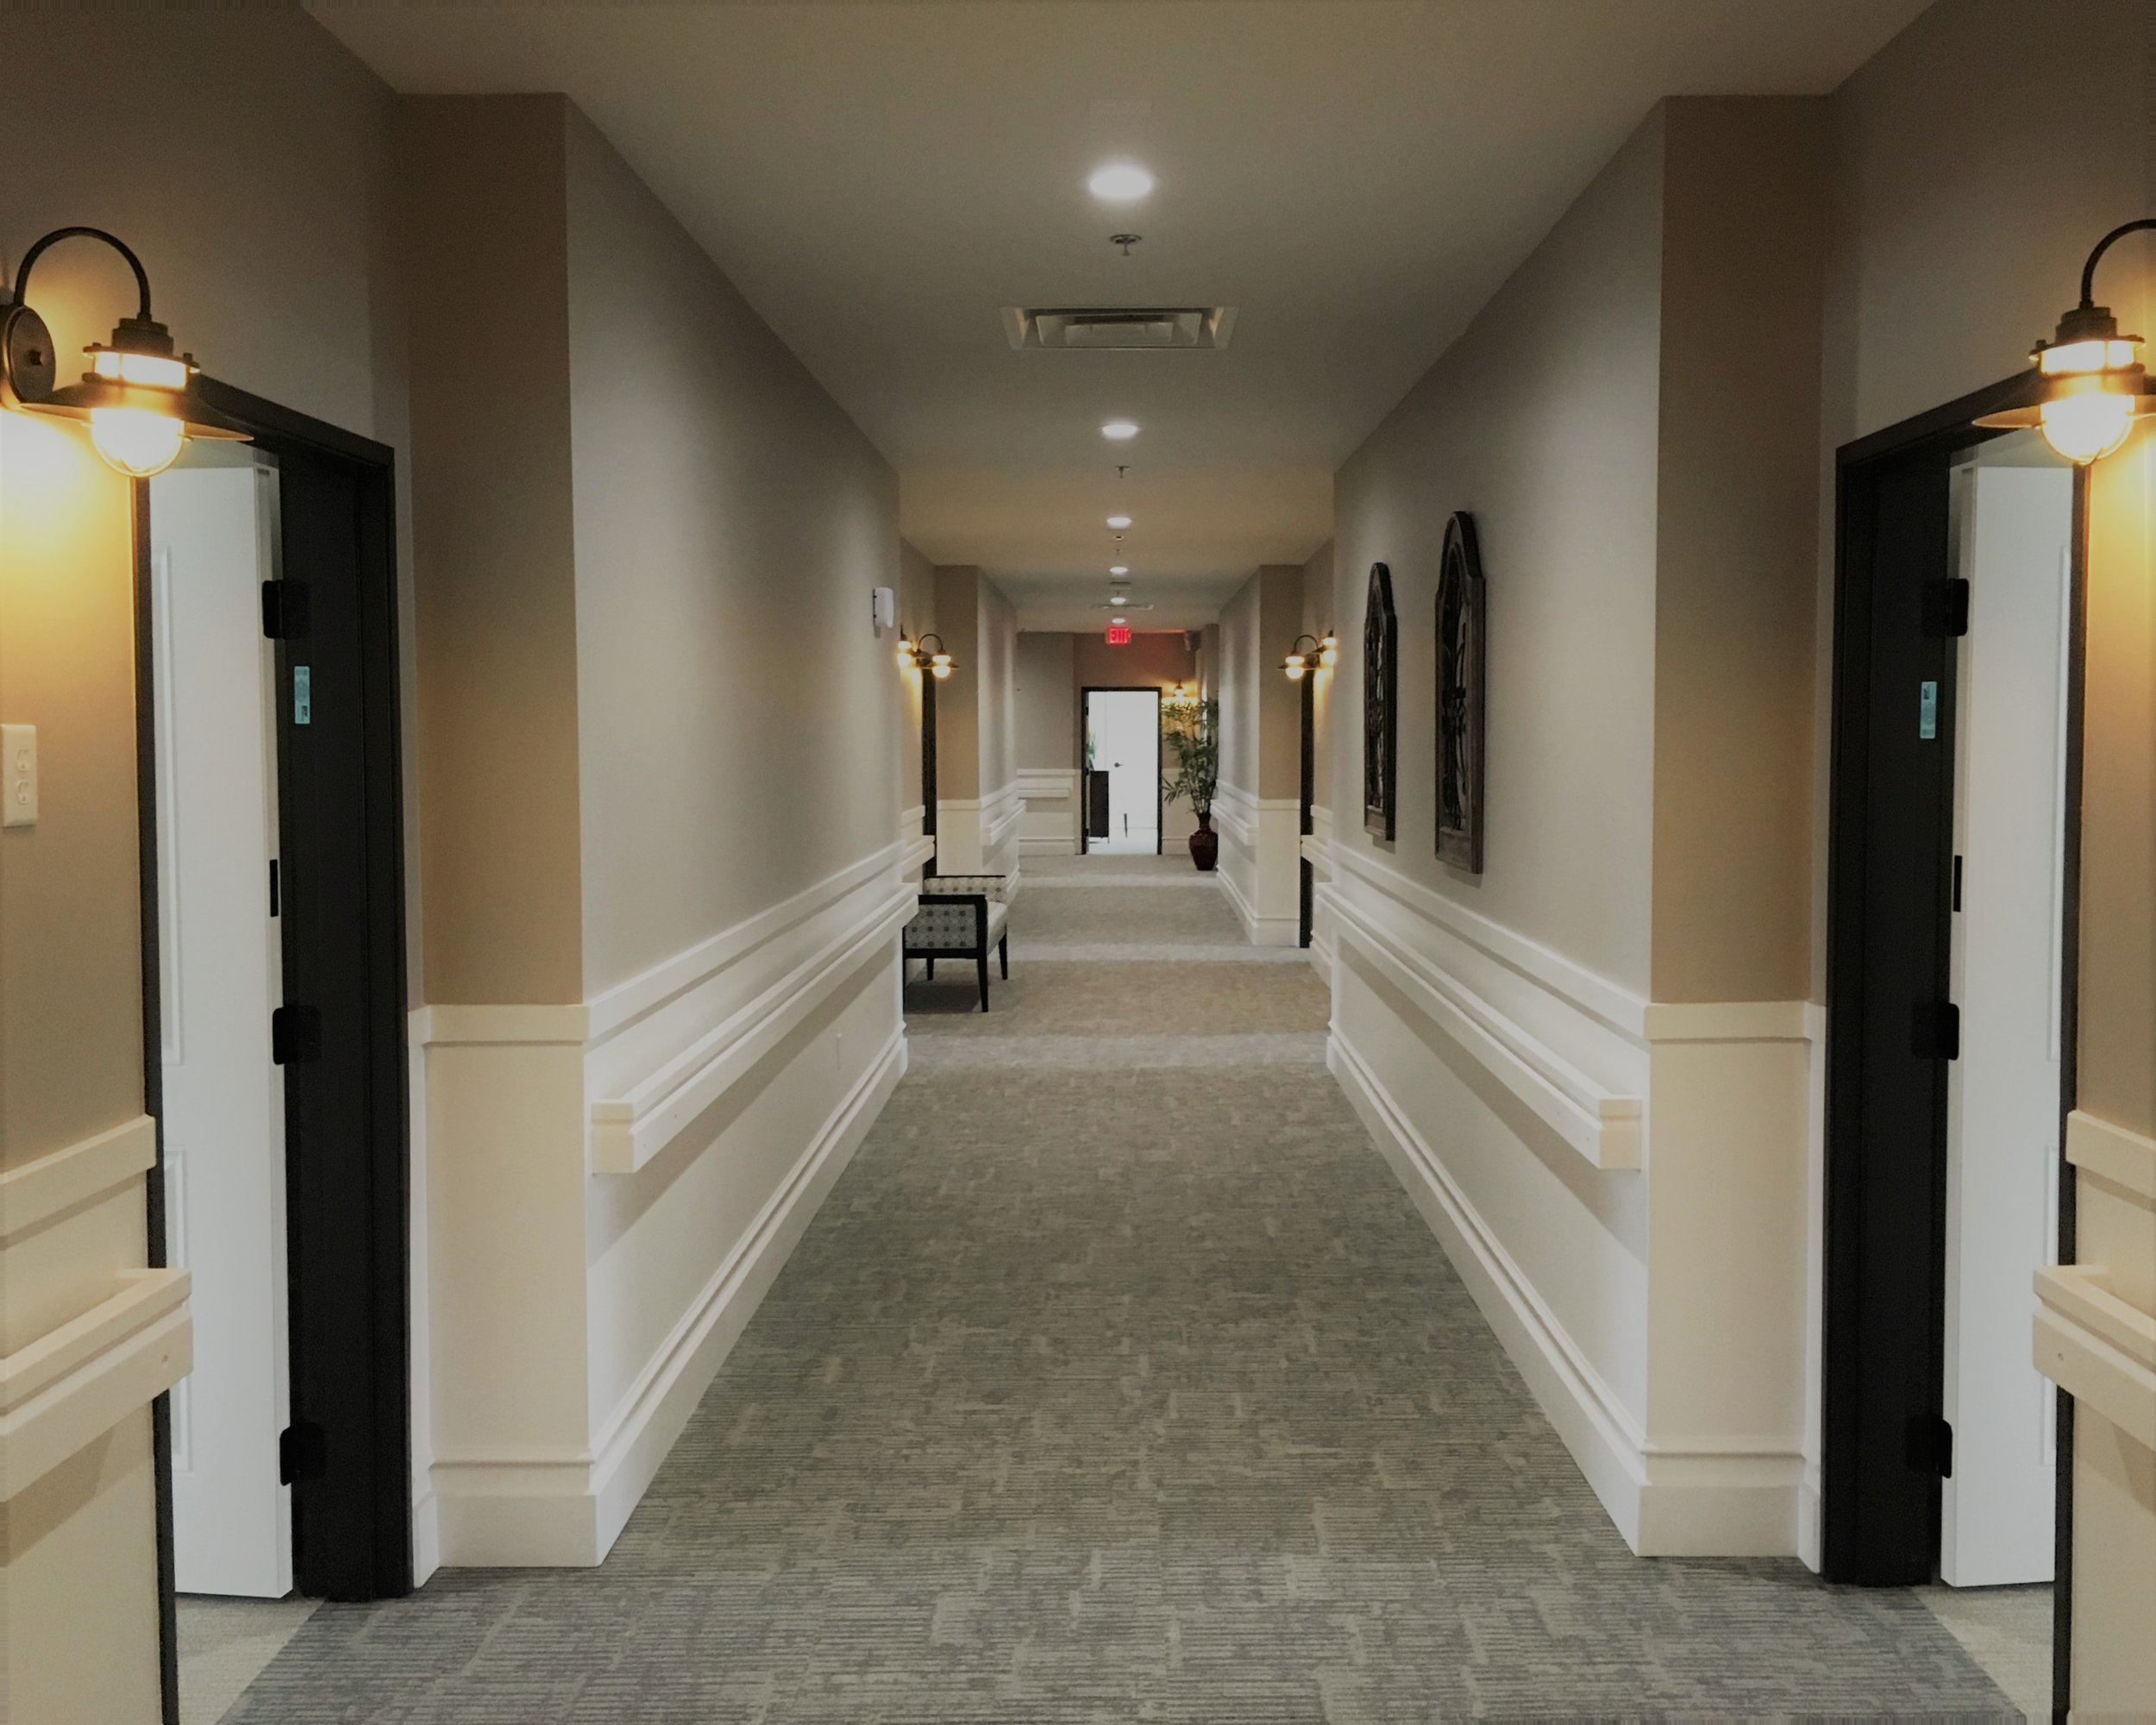 Smartly appointed colors and fixtures create comfortable walkways to residents' rooms.